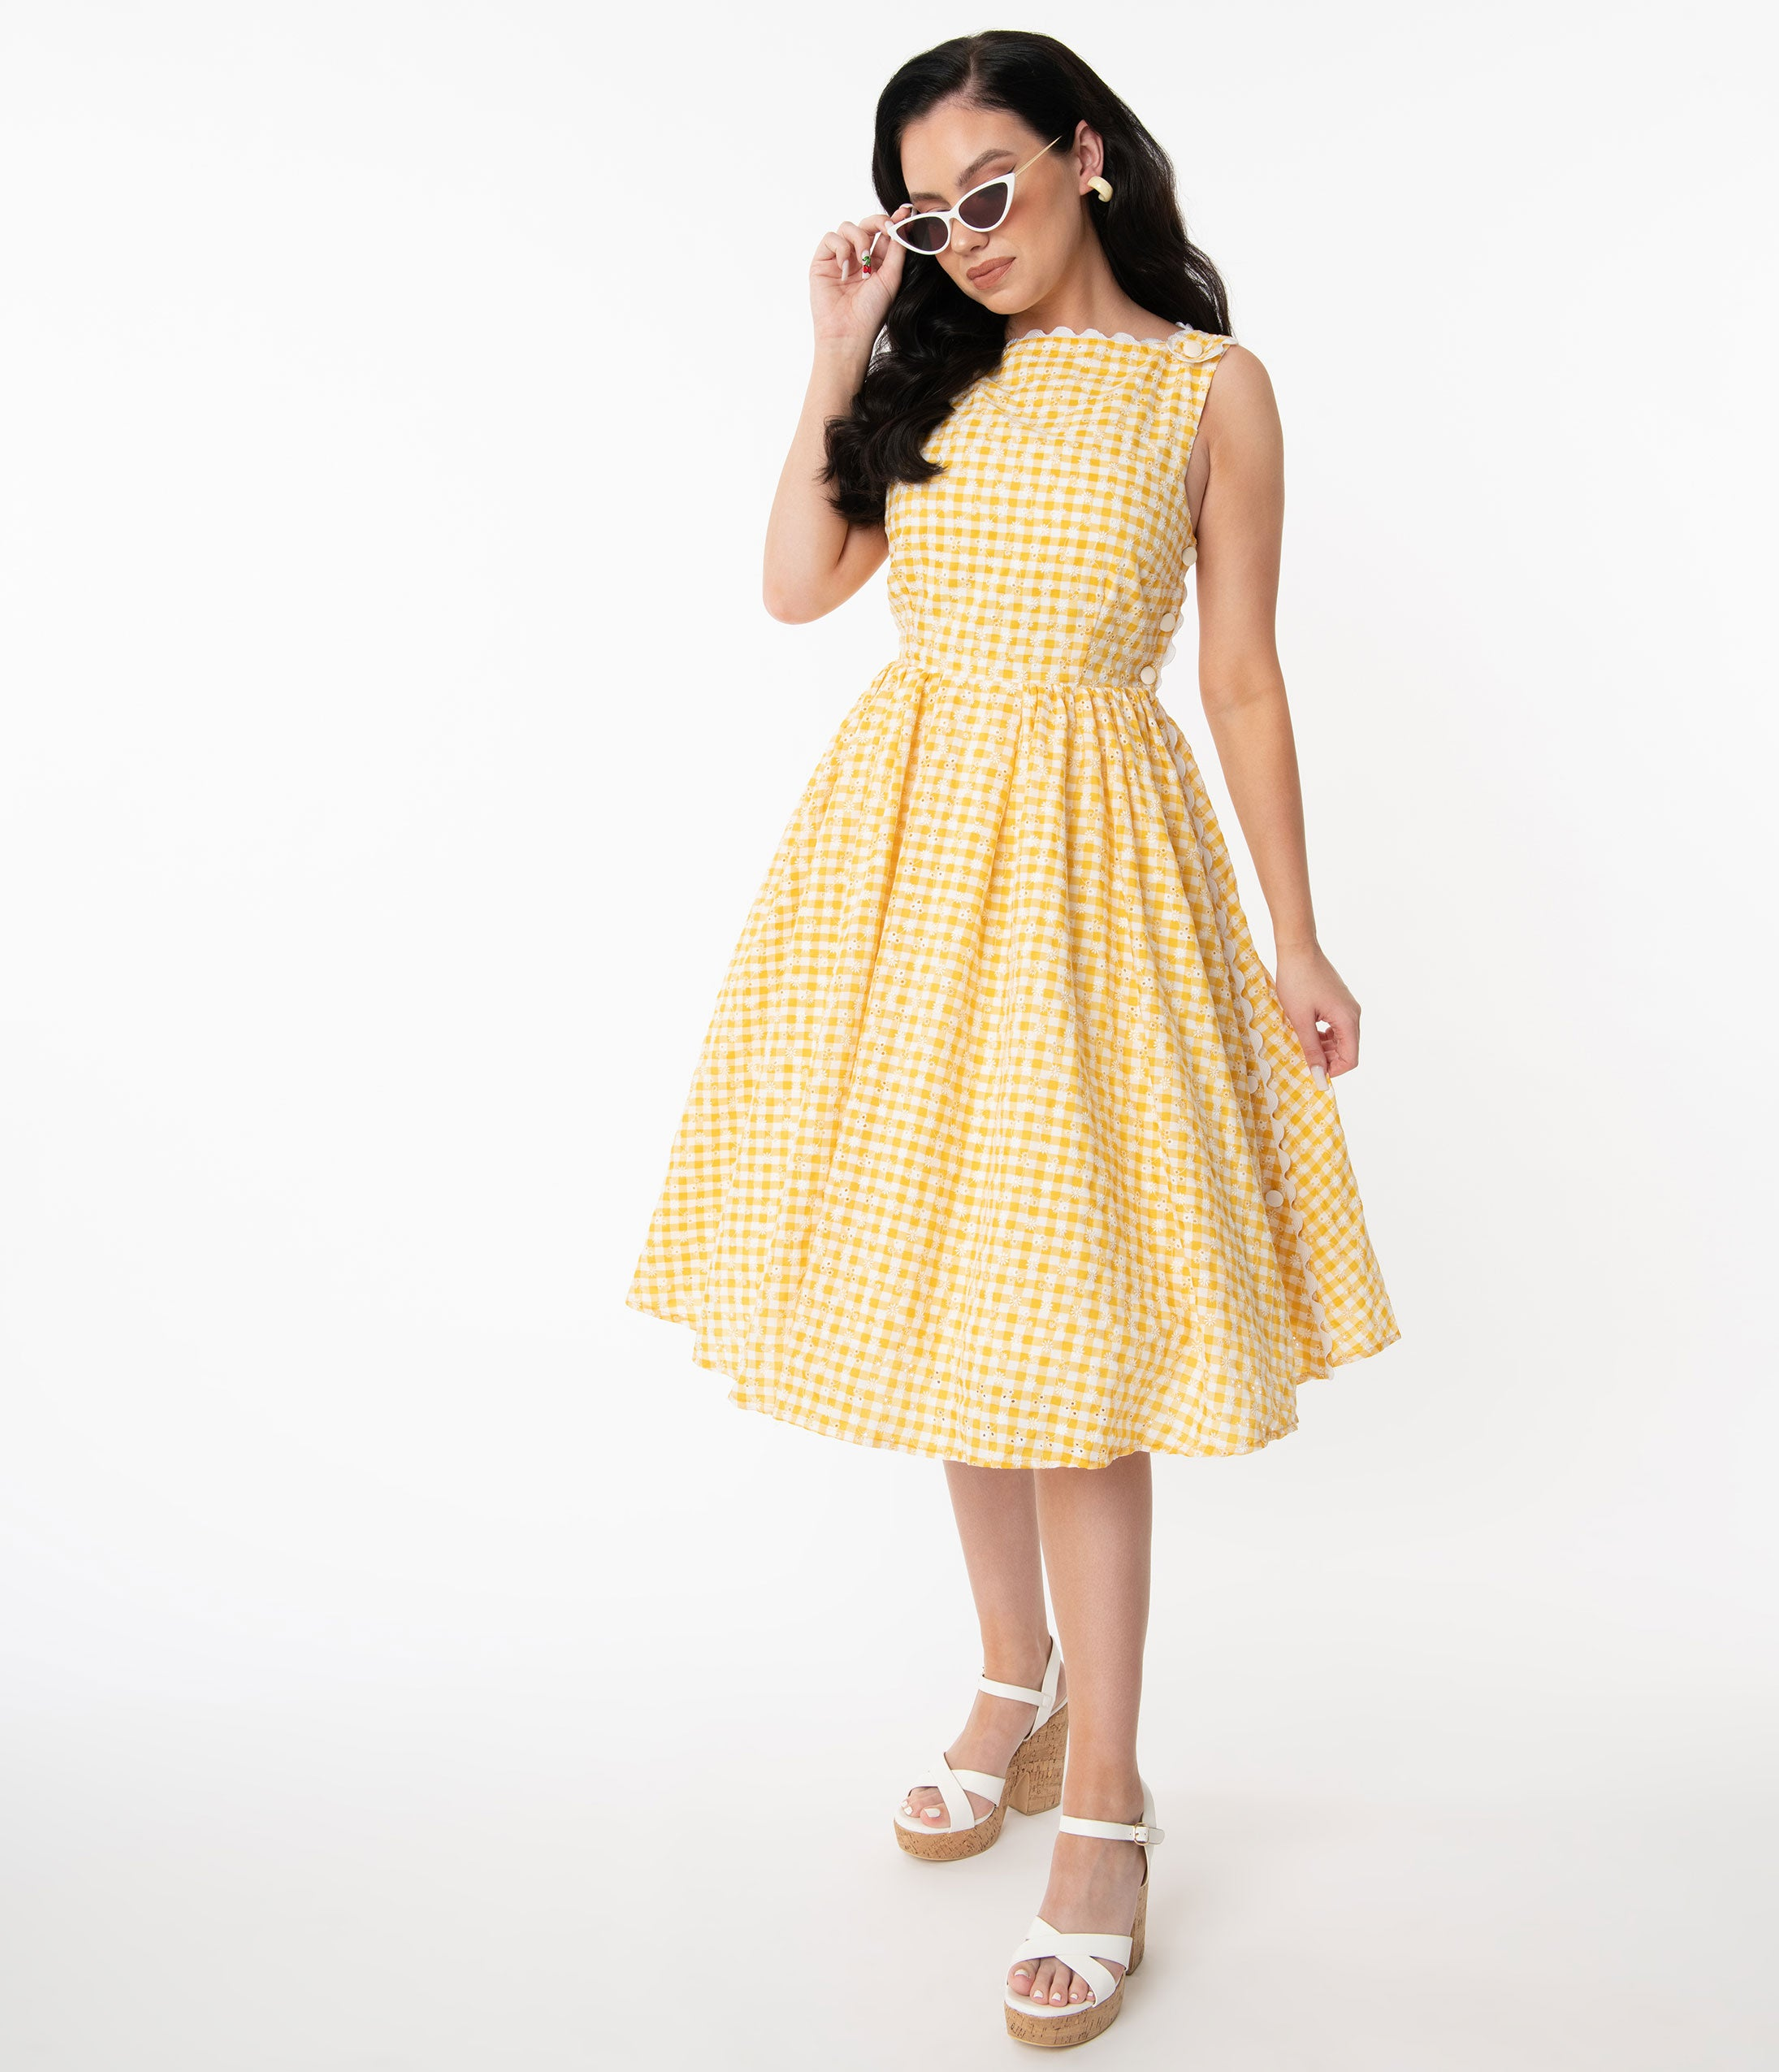 Vintage Western Wear Clothing, Outfit Ideas Unique Vintage Yellow Gingham Eyelet Livvie Swing Dress $98.00 AT vintagedancer.com